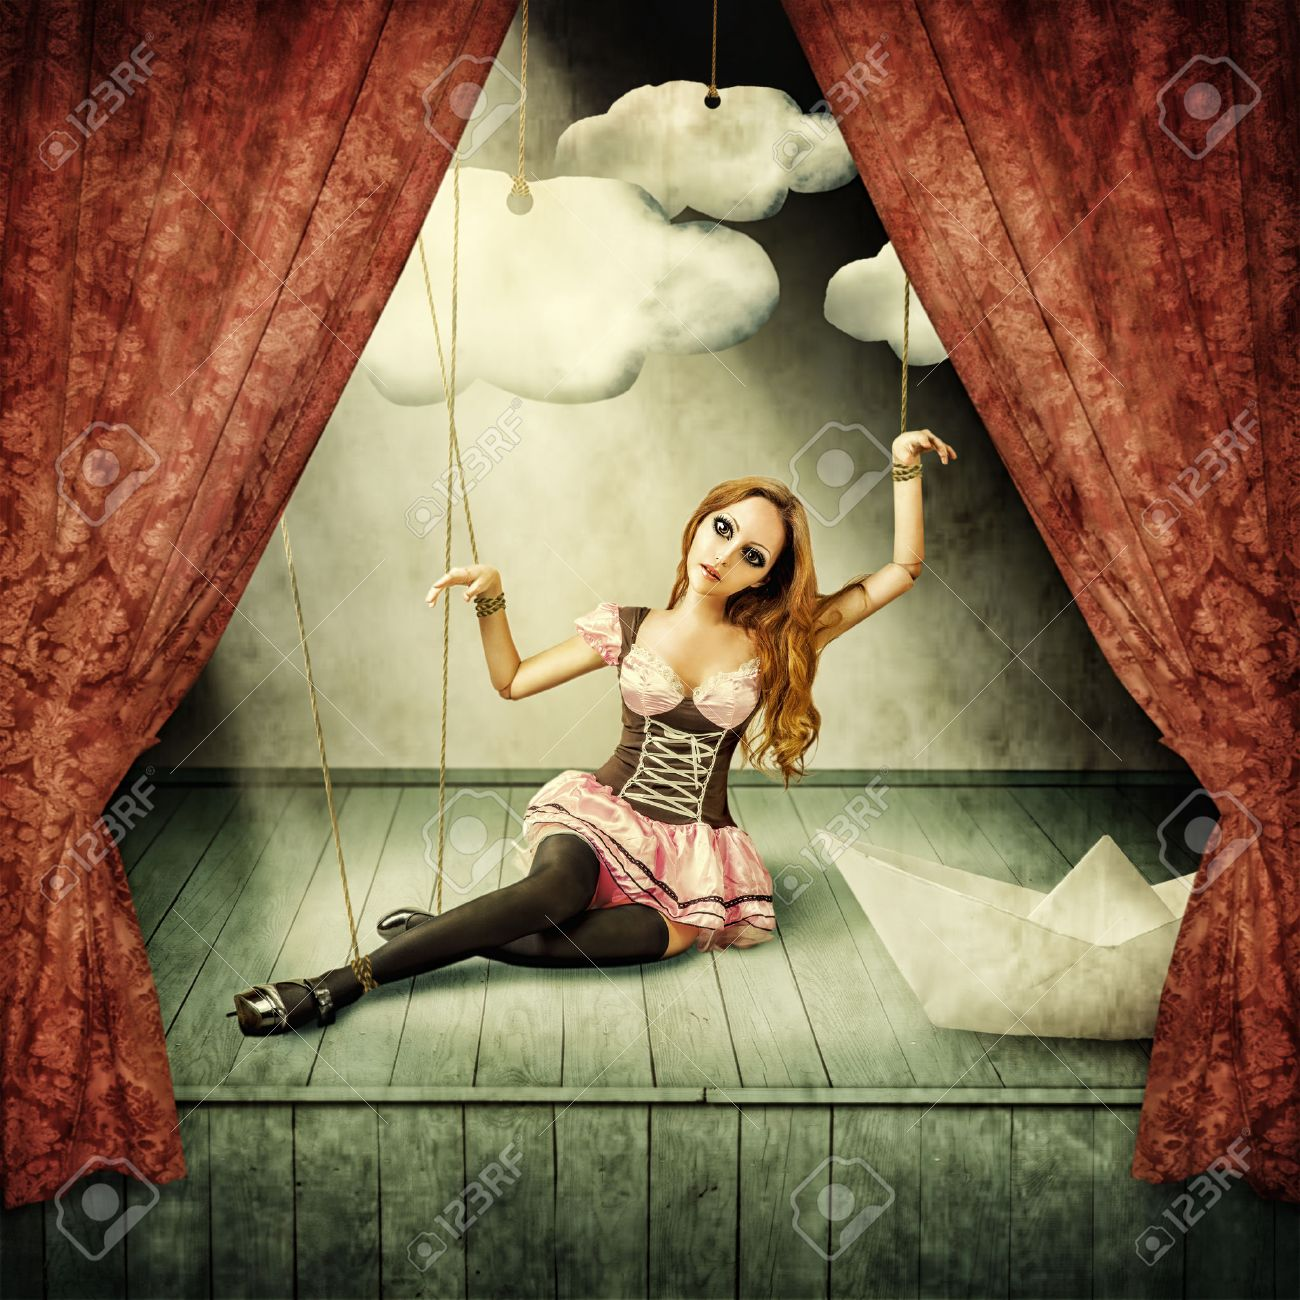 Beautiful woman marionette on stage puppet theater Stock Photo - 40818098